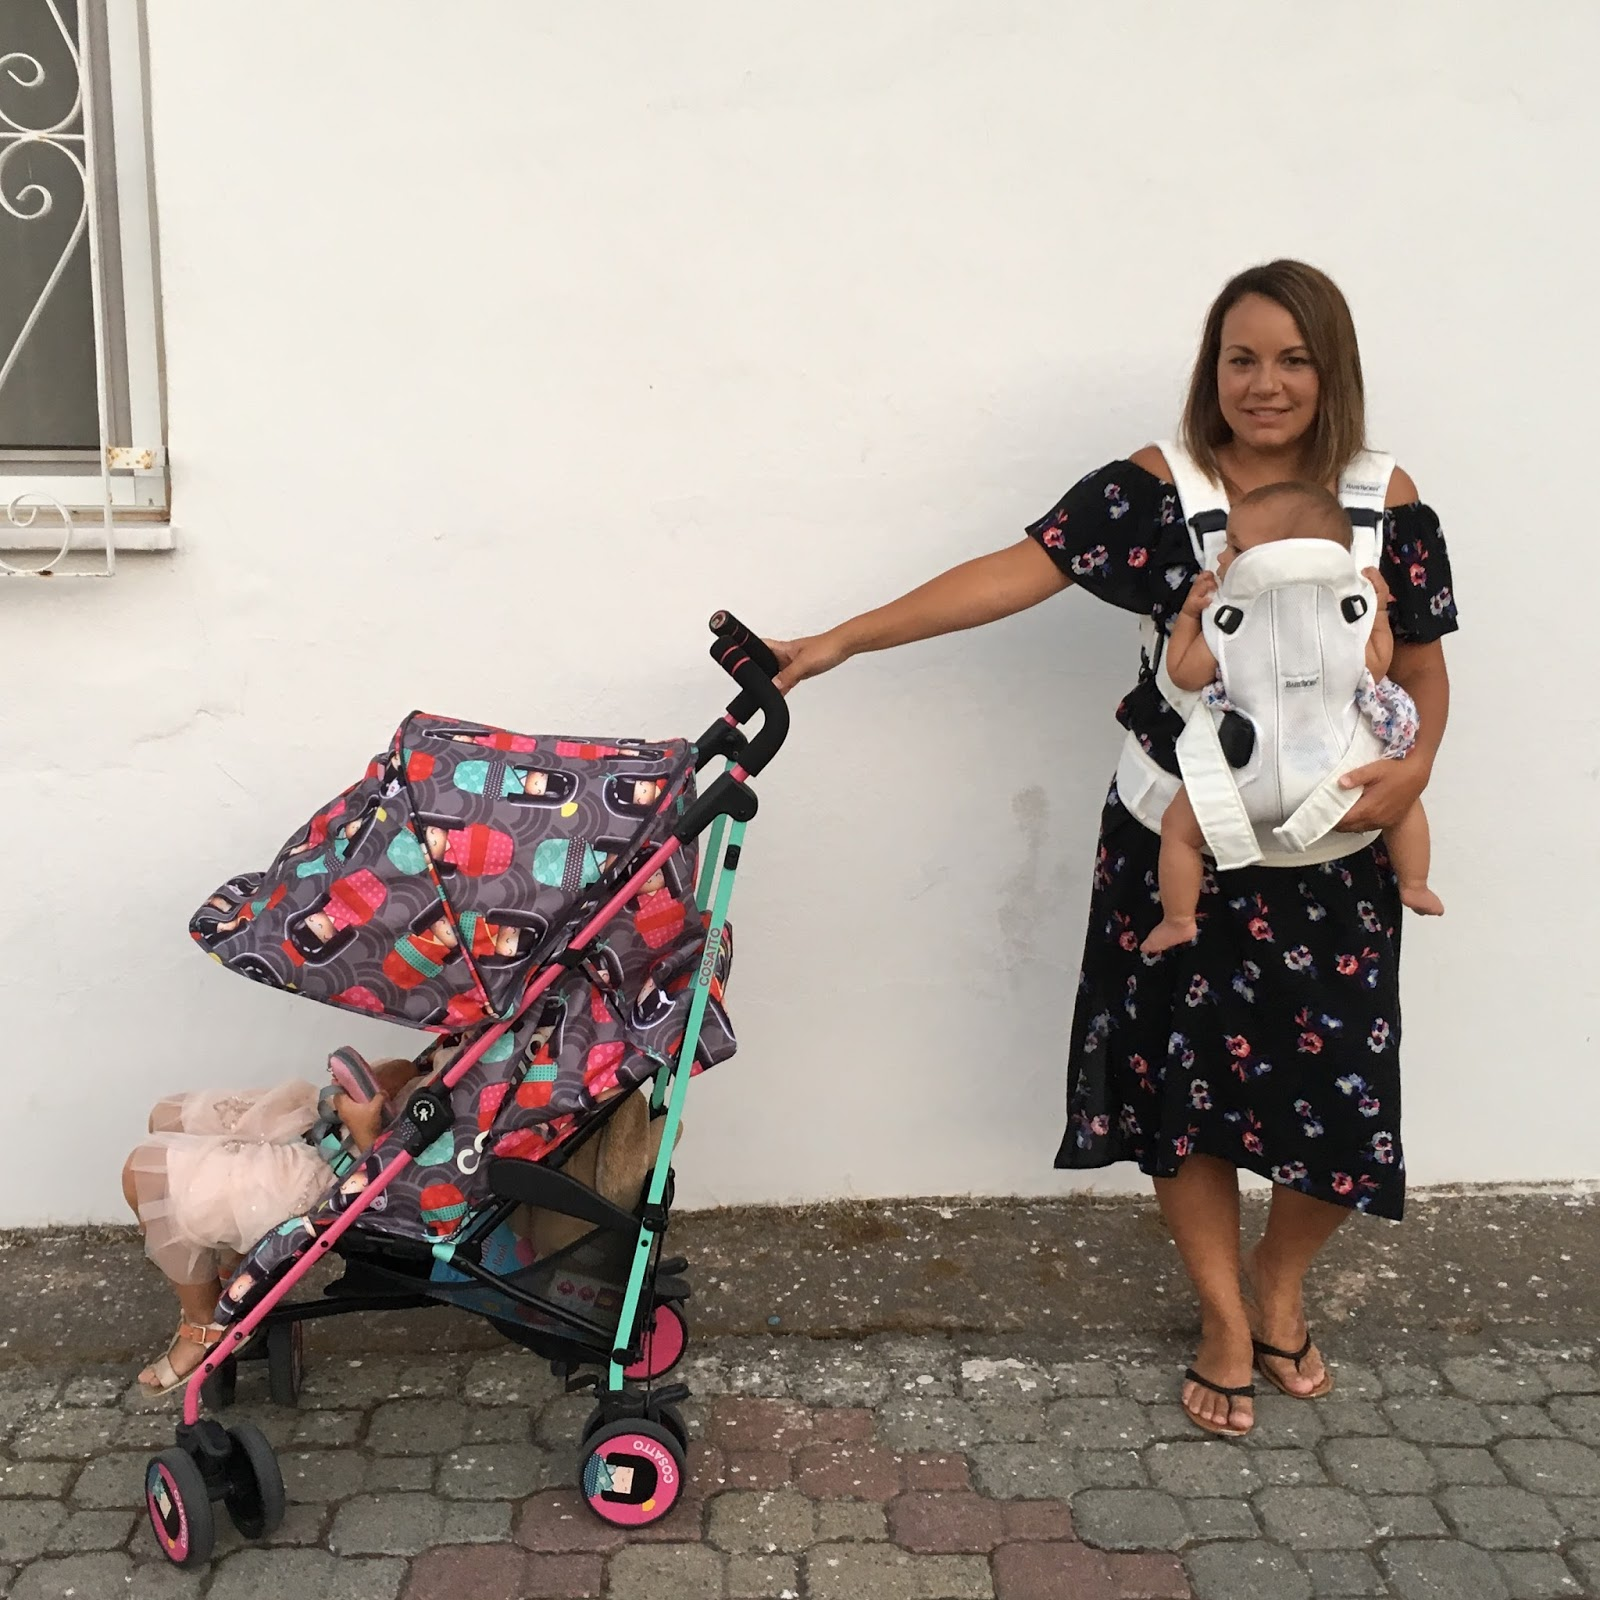 Babybjorn We Air Carrier Review Kerry Louise Norris